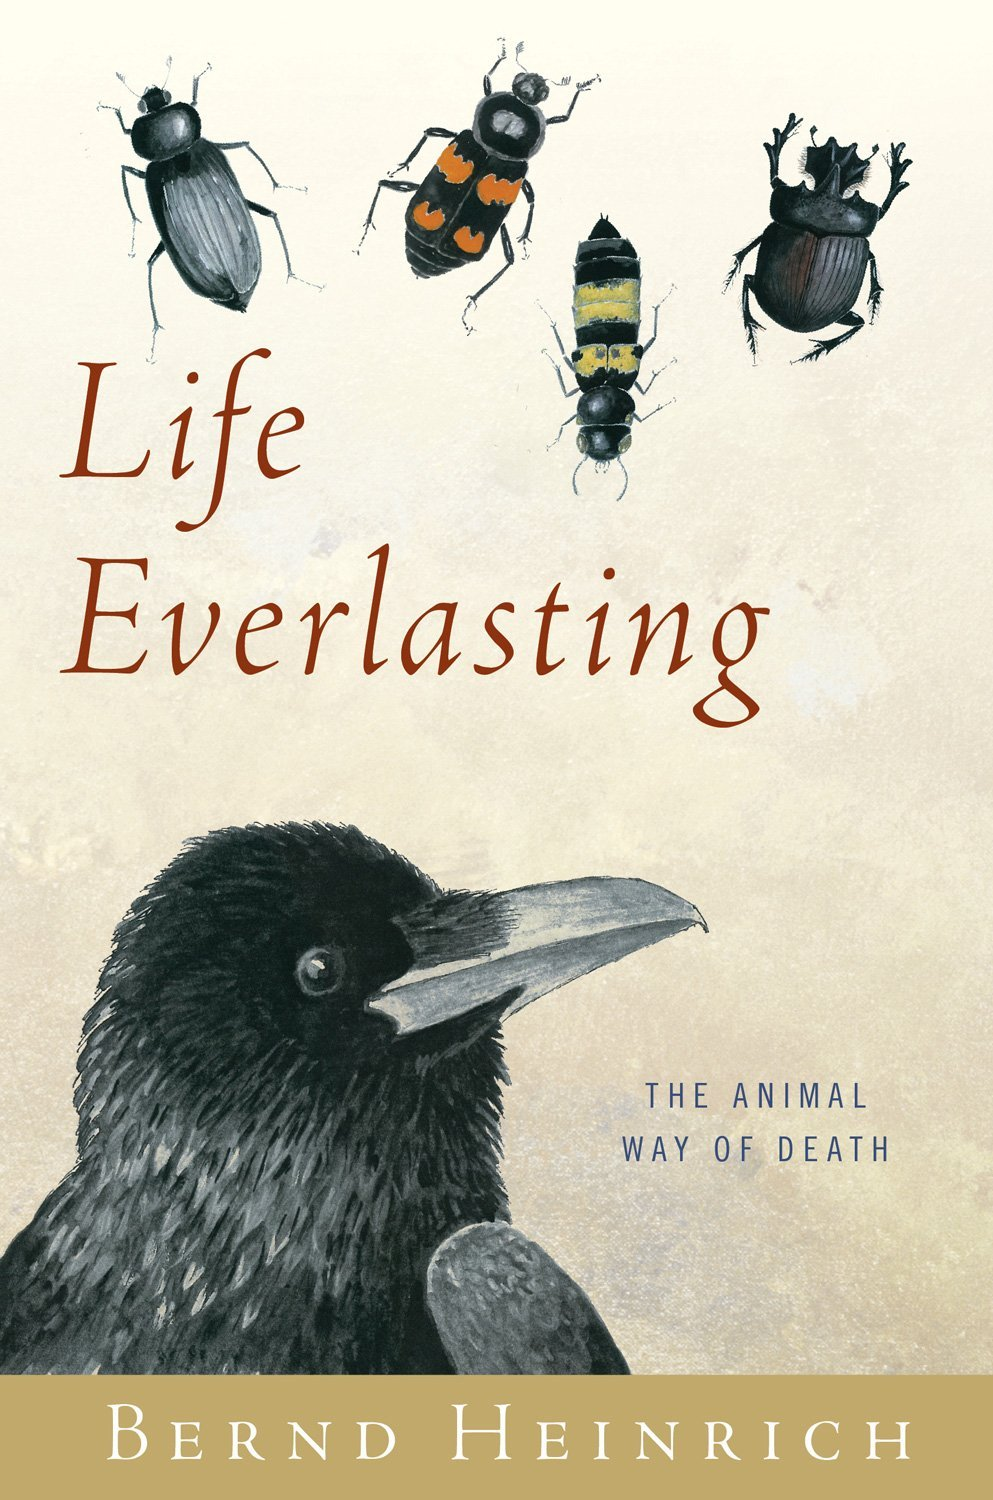 2013 Nonfiction:  Life Everlasting: The Animal Way of Death  by Bernd Heinrich